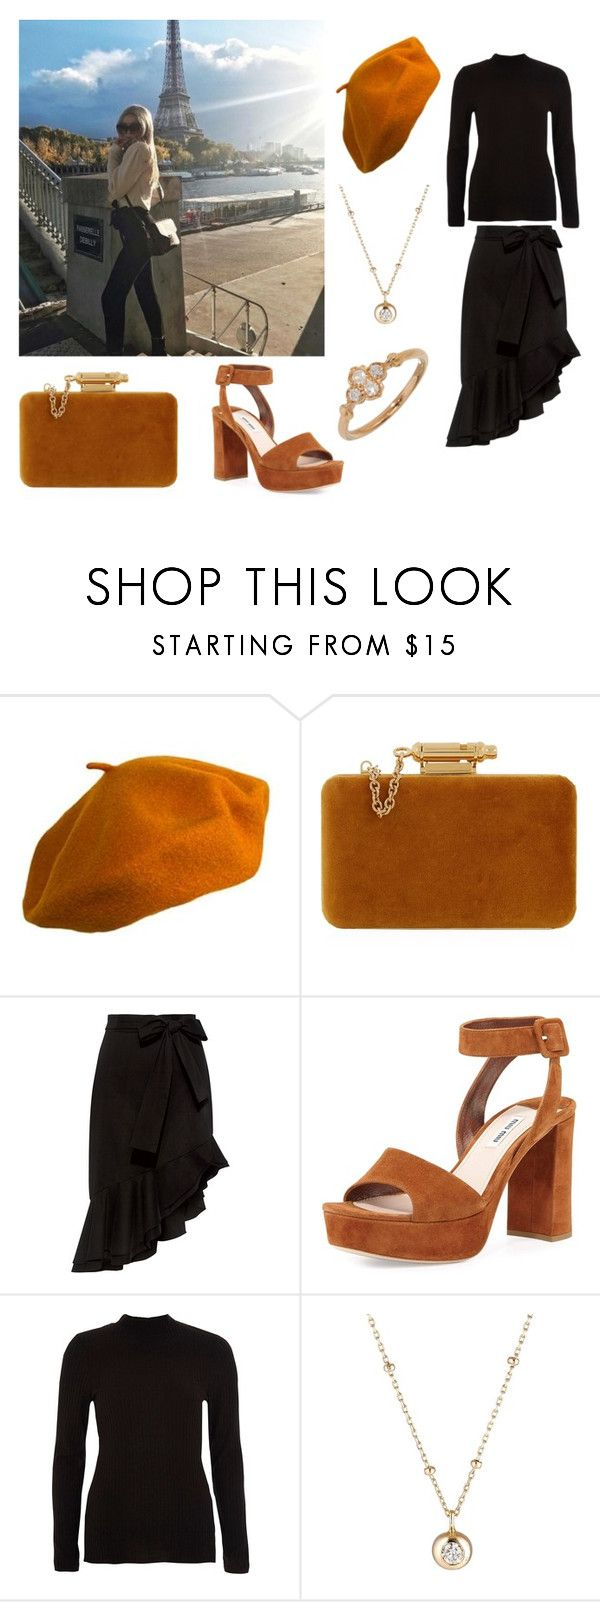 """""""hang out in paris"""" by selin-richie ❤ liked on Polyvore featuring Burberry, Sophie Hulme, Saloni, Miu Miu, River Island, Hirotaka and Cartier"""